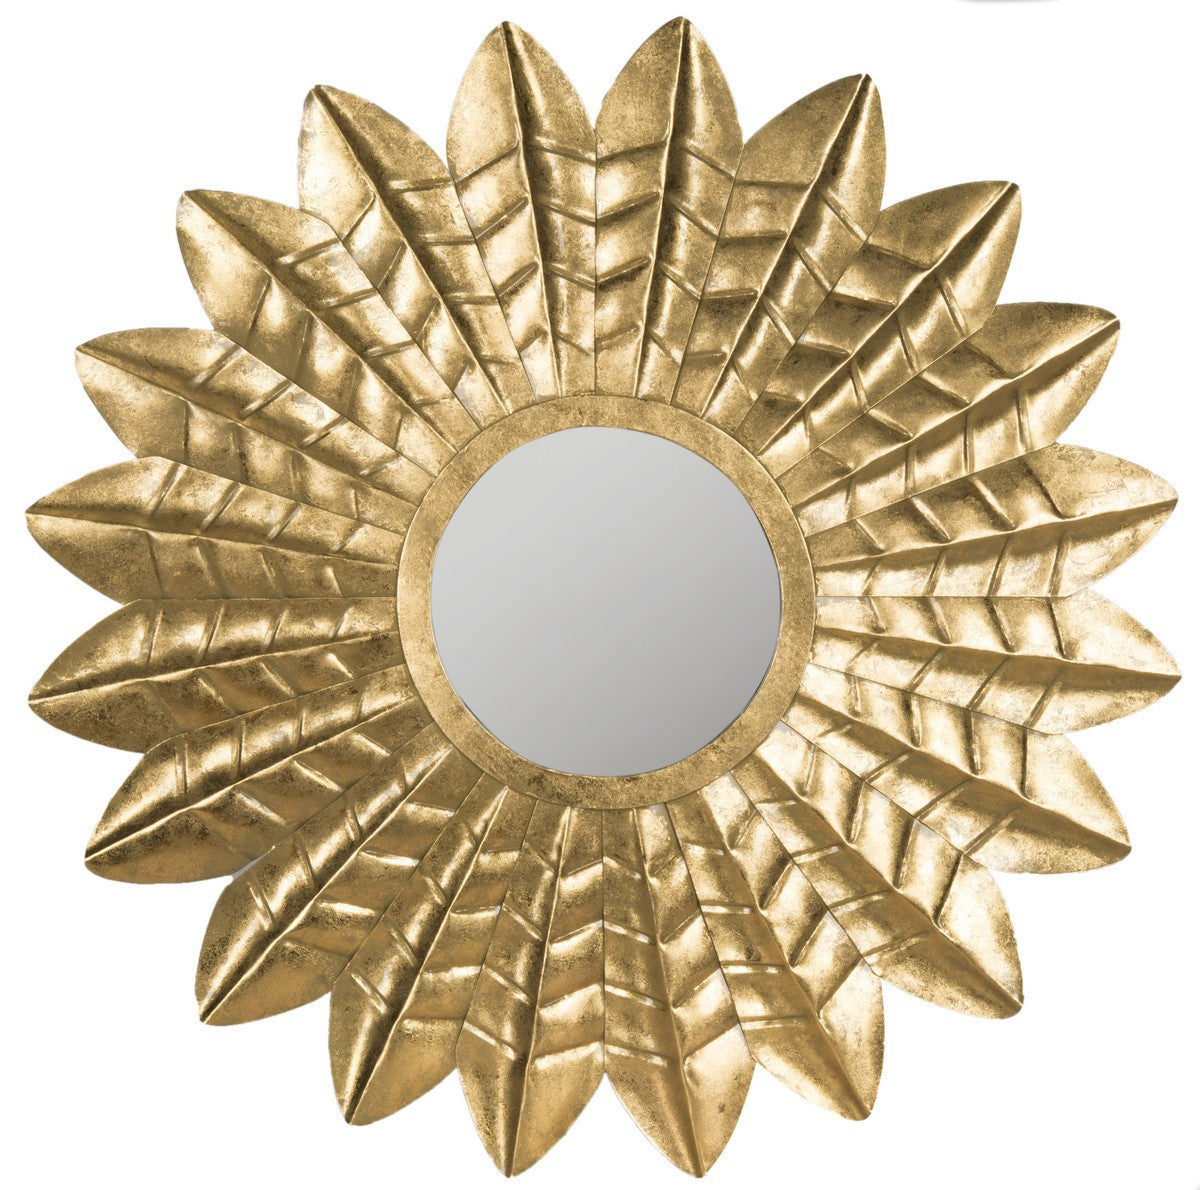 Deco Leaf Mirror in Antique Gold Iron and Wood